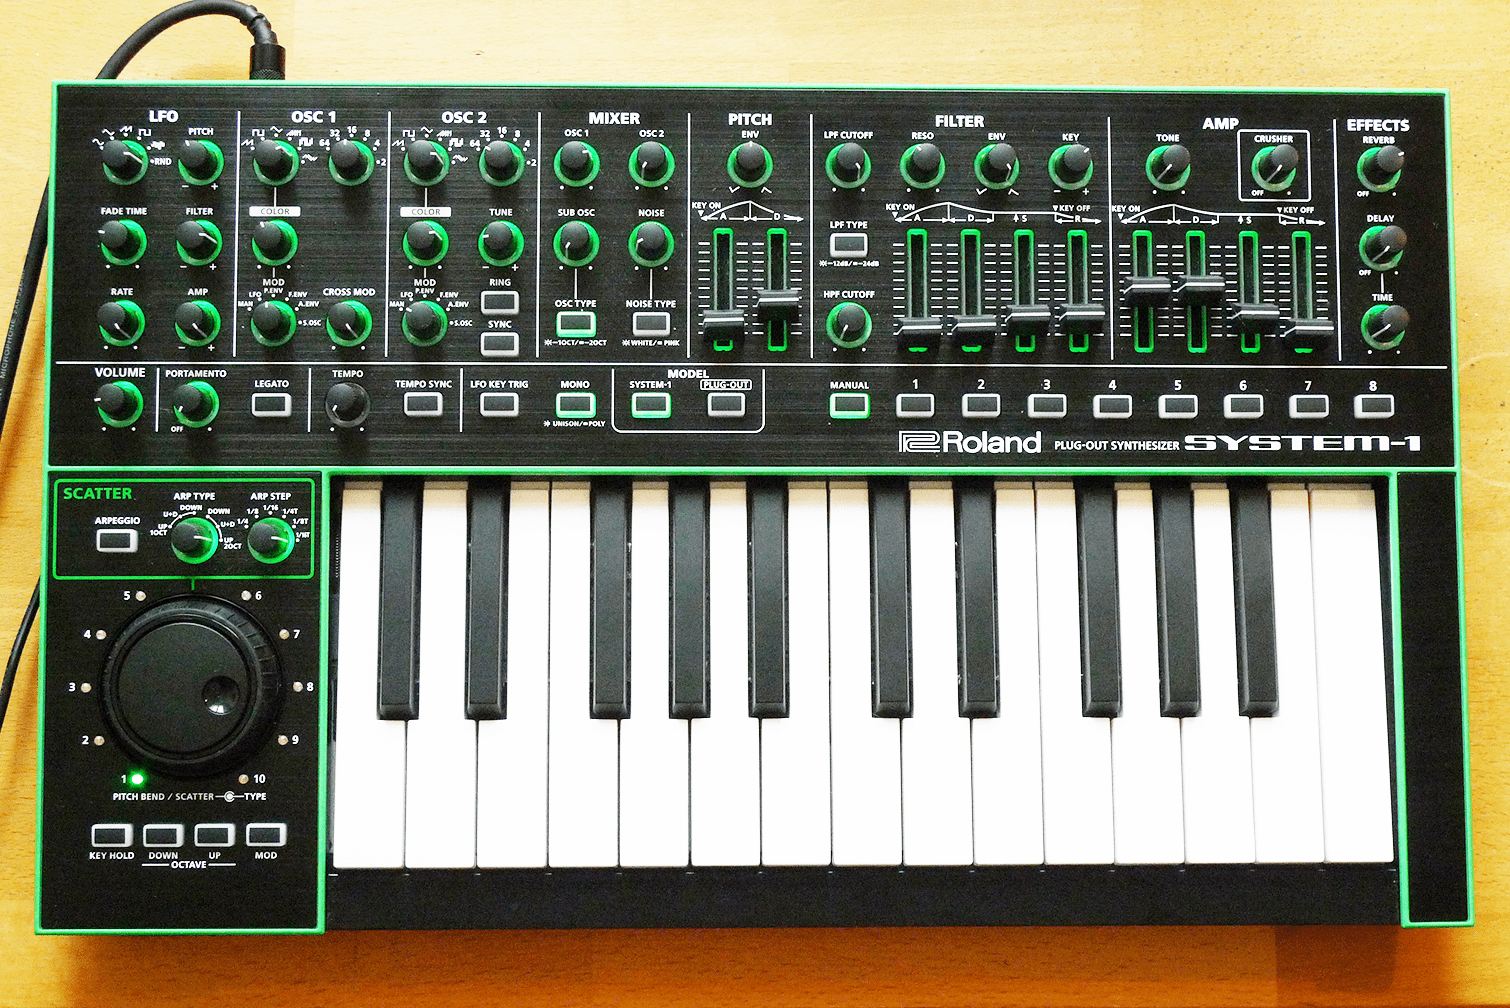 Roland SH-101 Samples and Filter CV Mod - click on